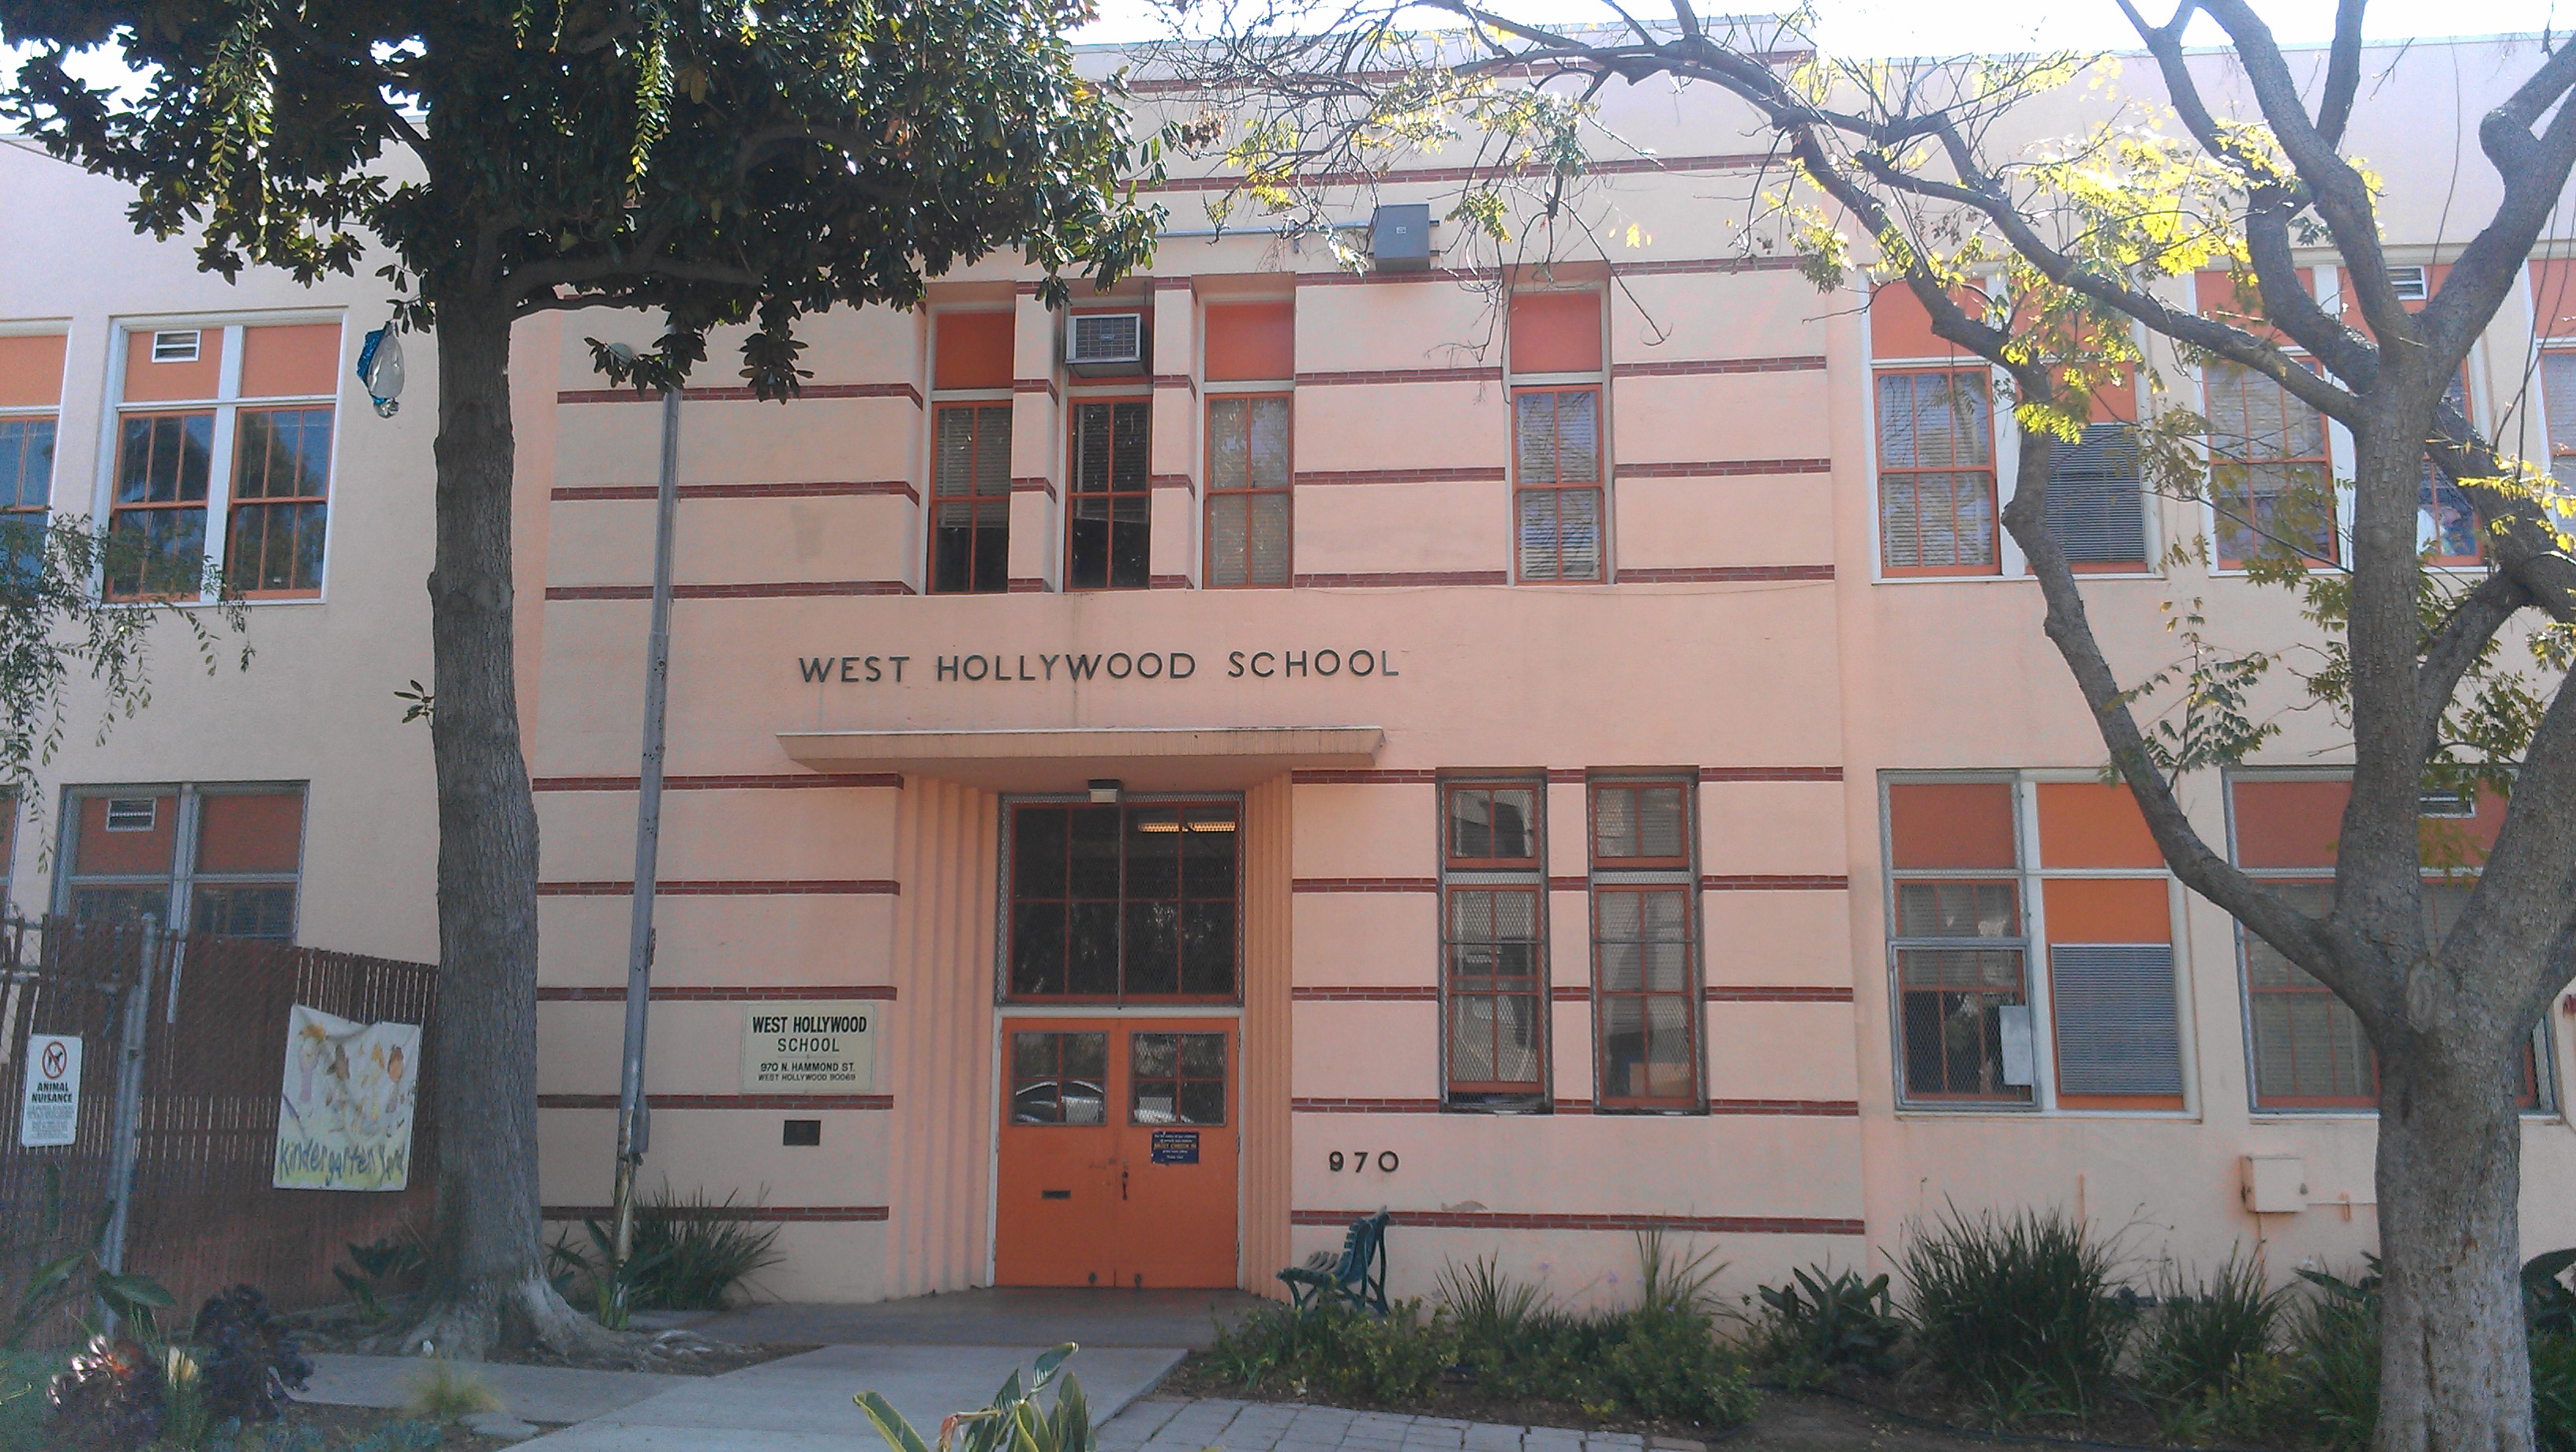 West Hollywood Elementary